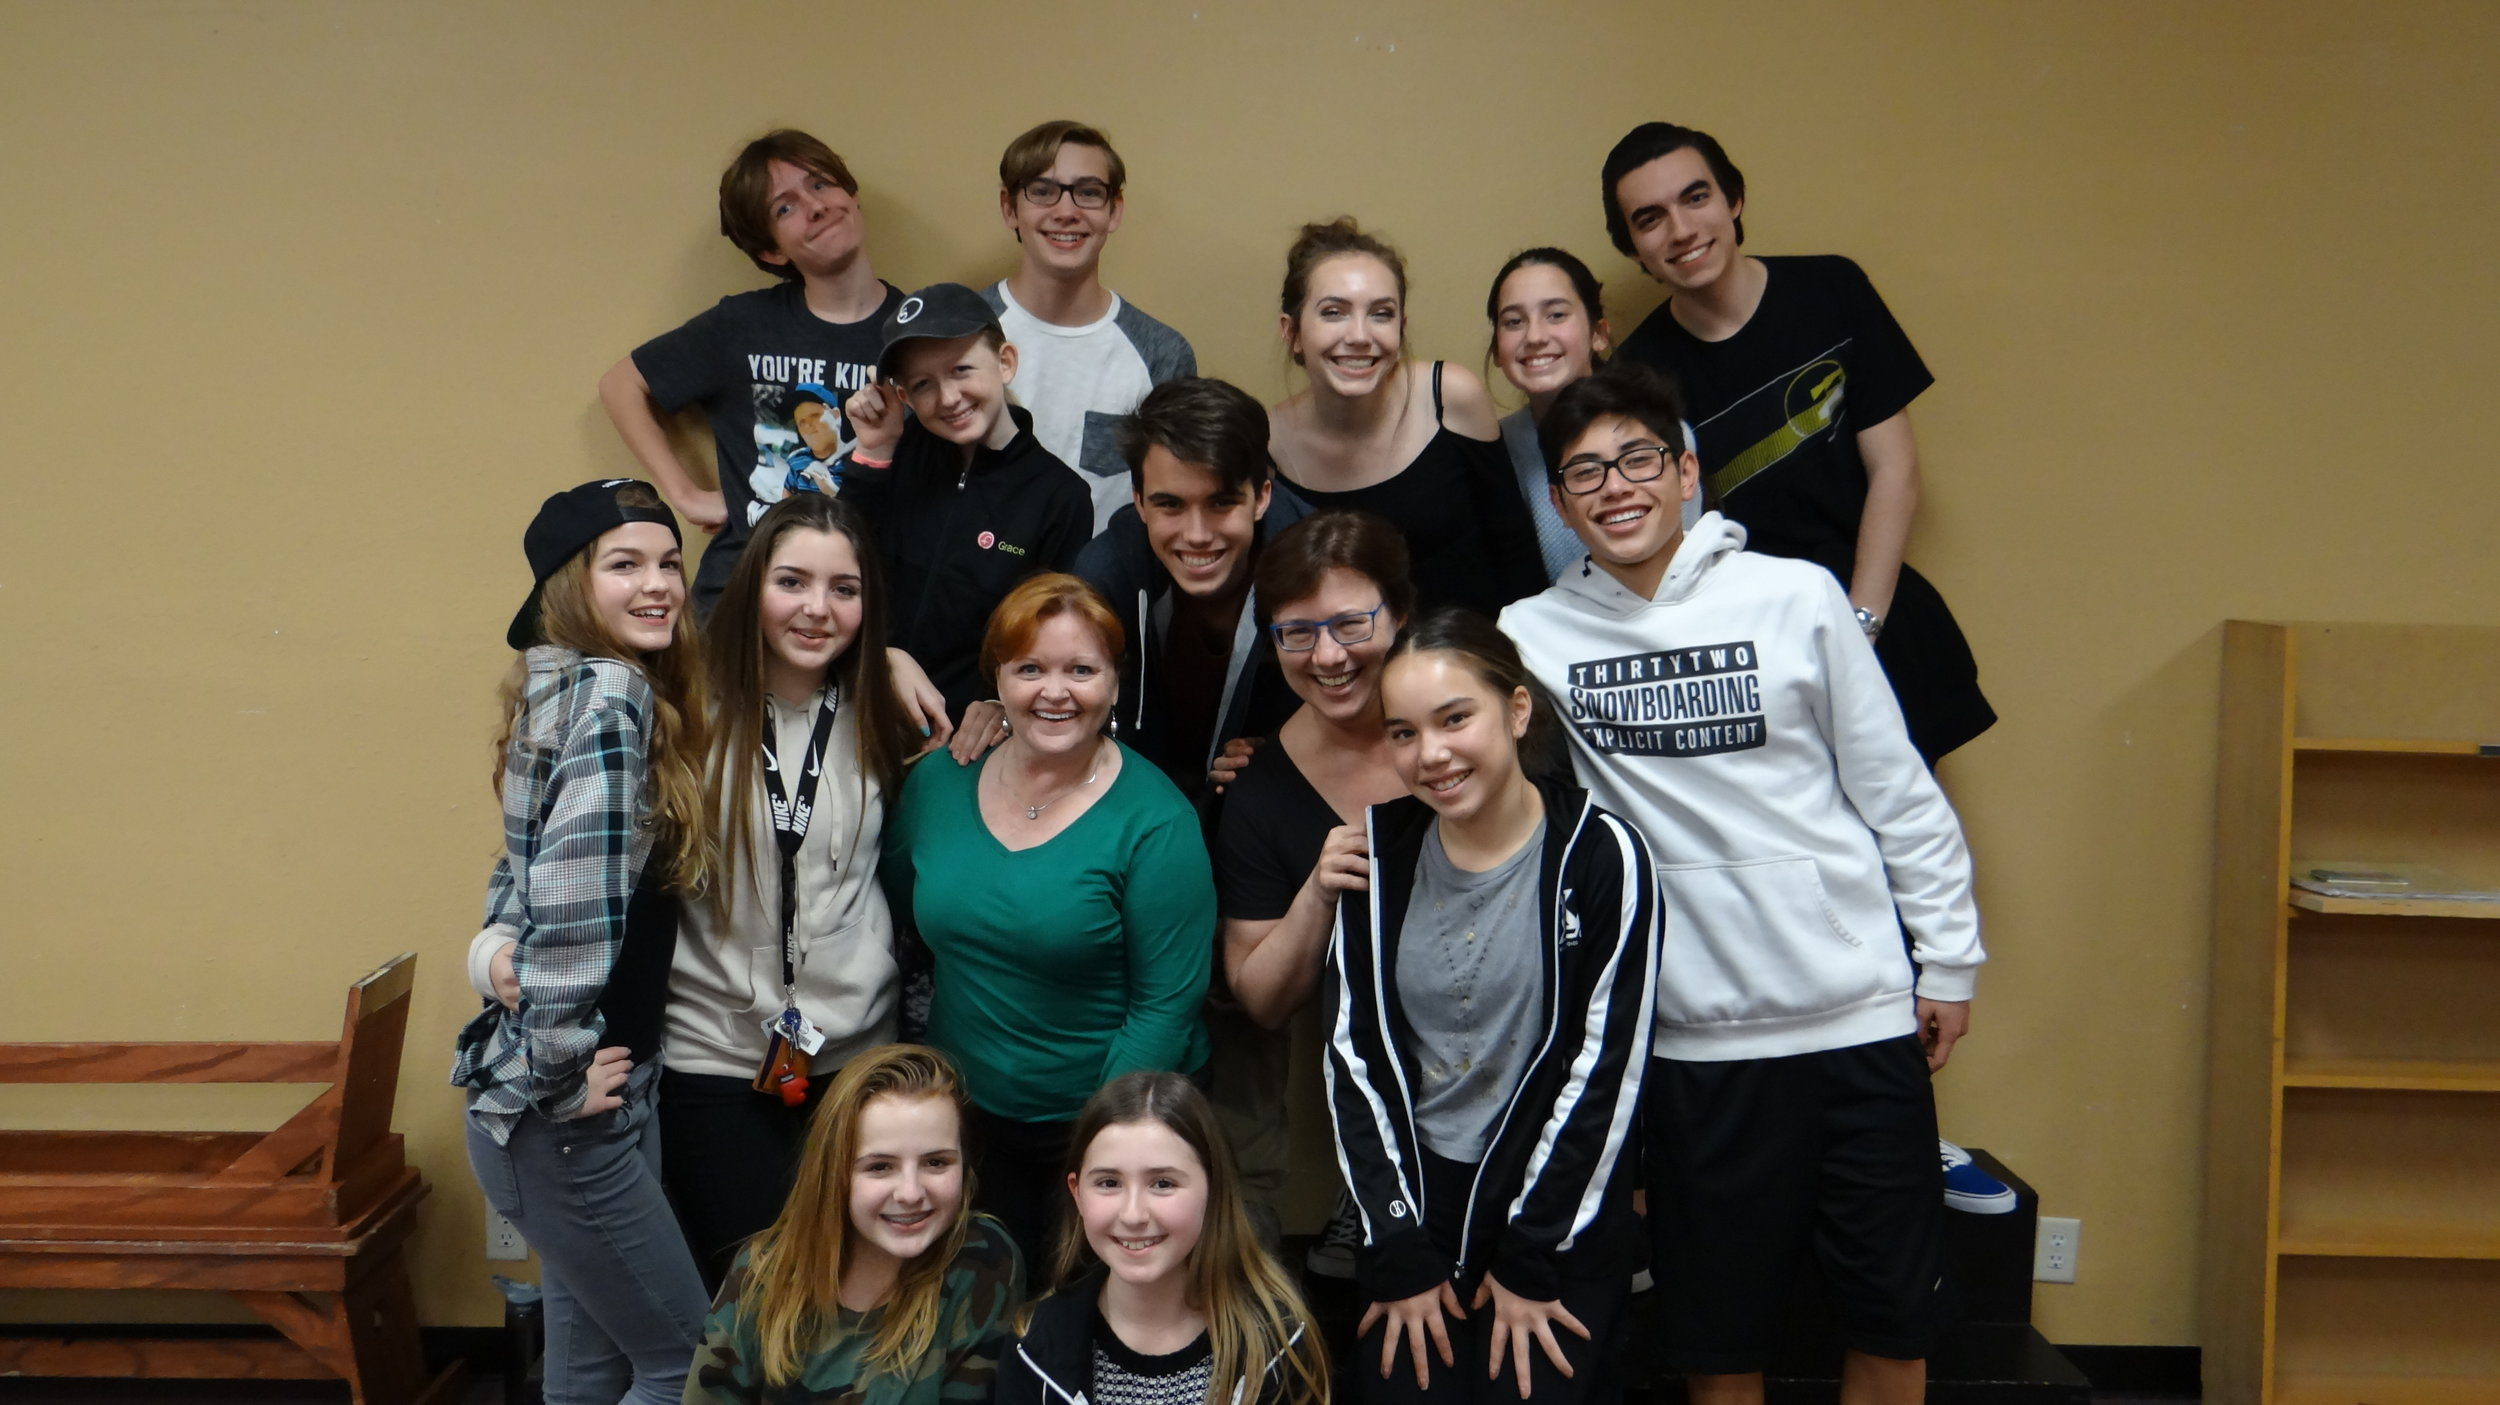 Shauna Markey and Take the Stage owner Bethany Price surrounded by some of the Working Pro Teen students.